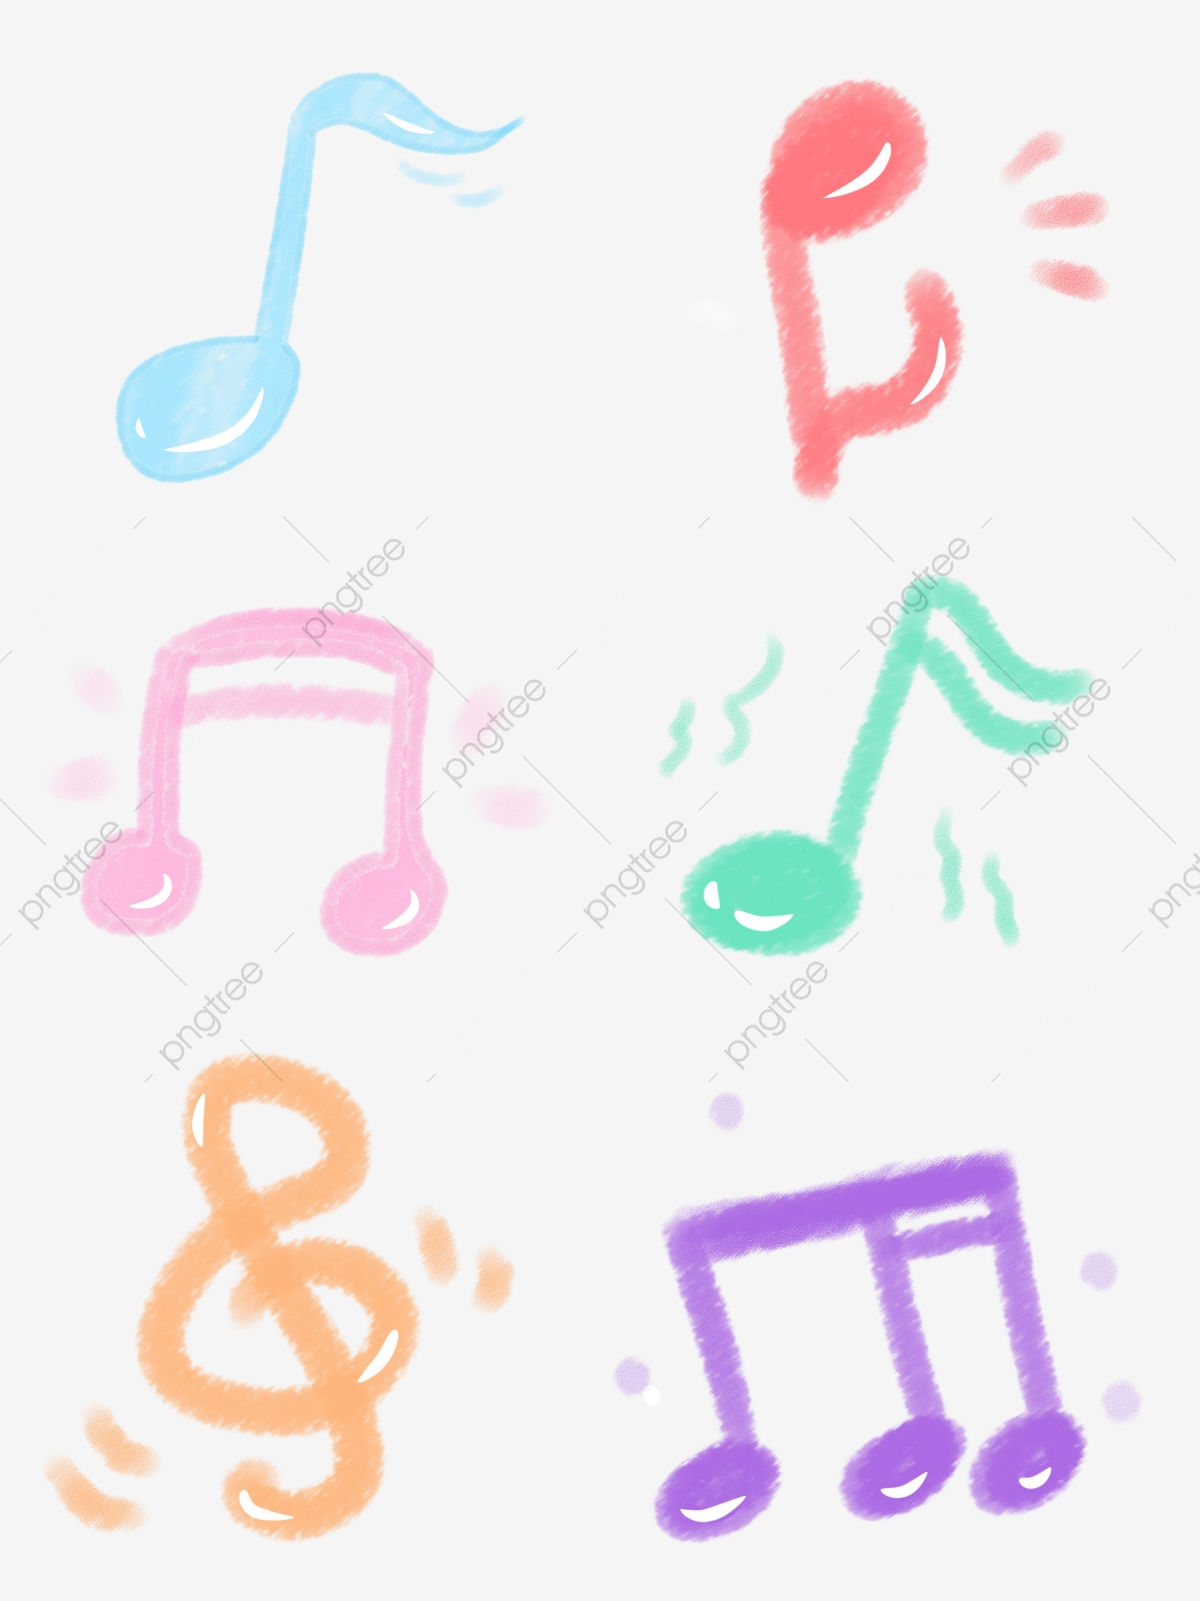 Business Hand Account Cute Cartoon Stick Music Festival Colorful